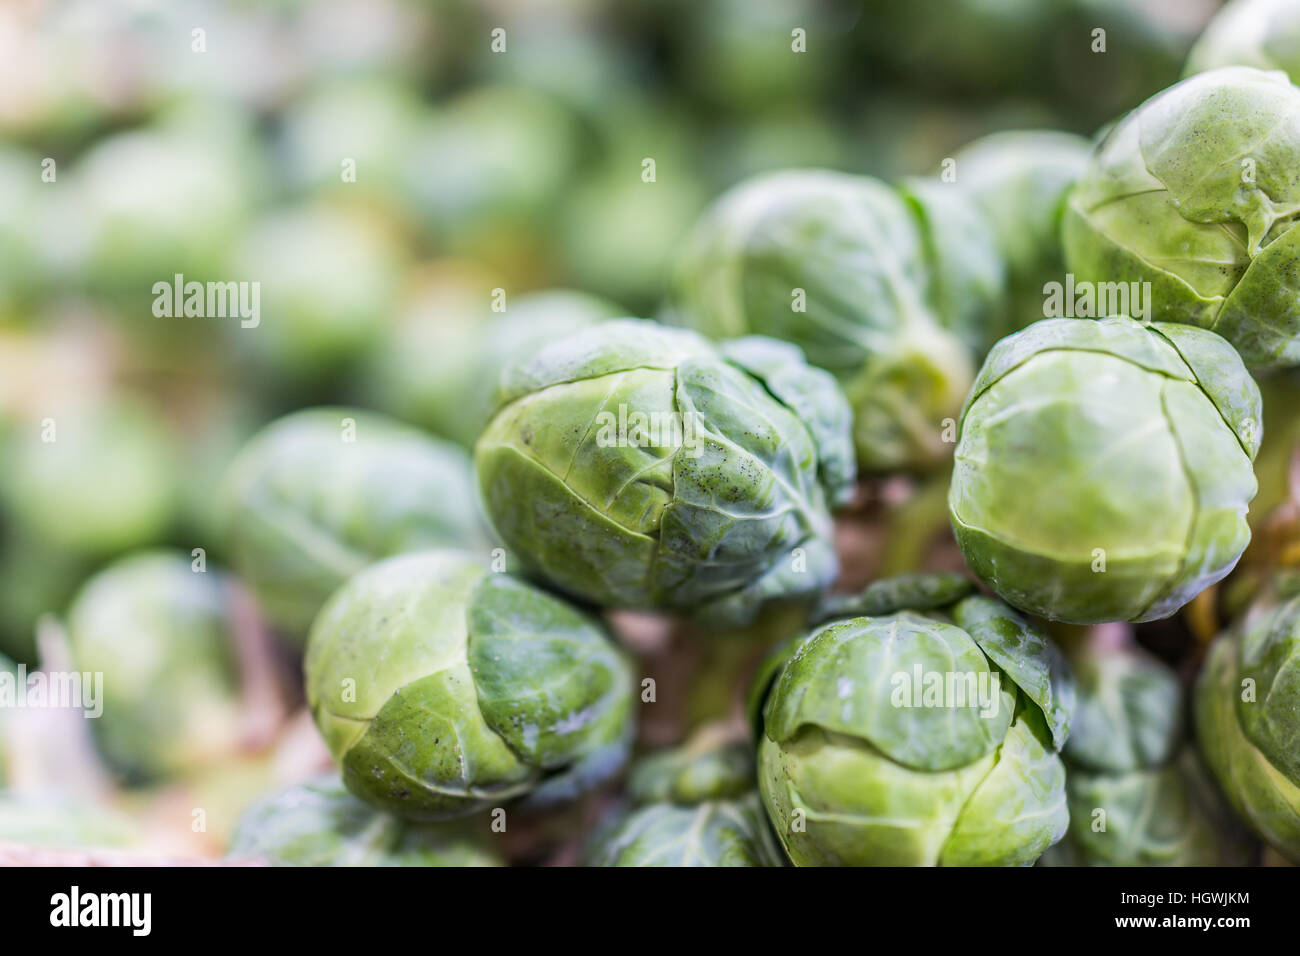 Macro closeup of brussels sprouts on stem on display - Stock Image